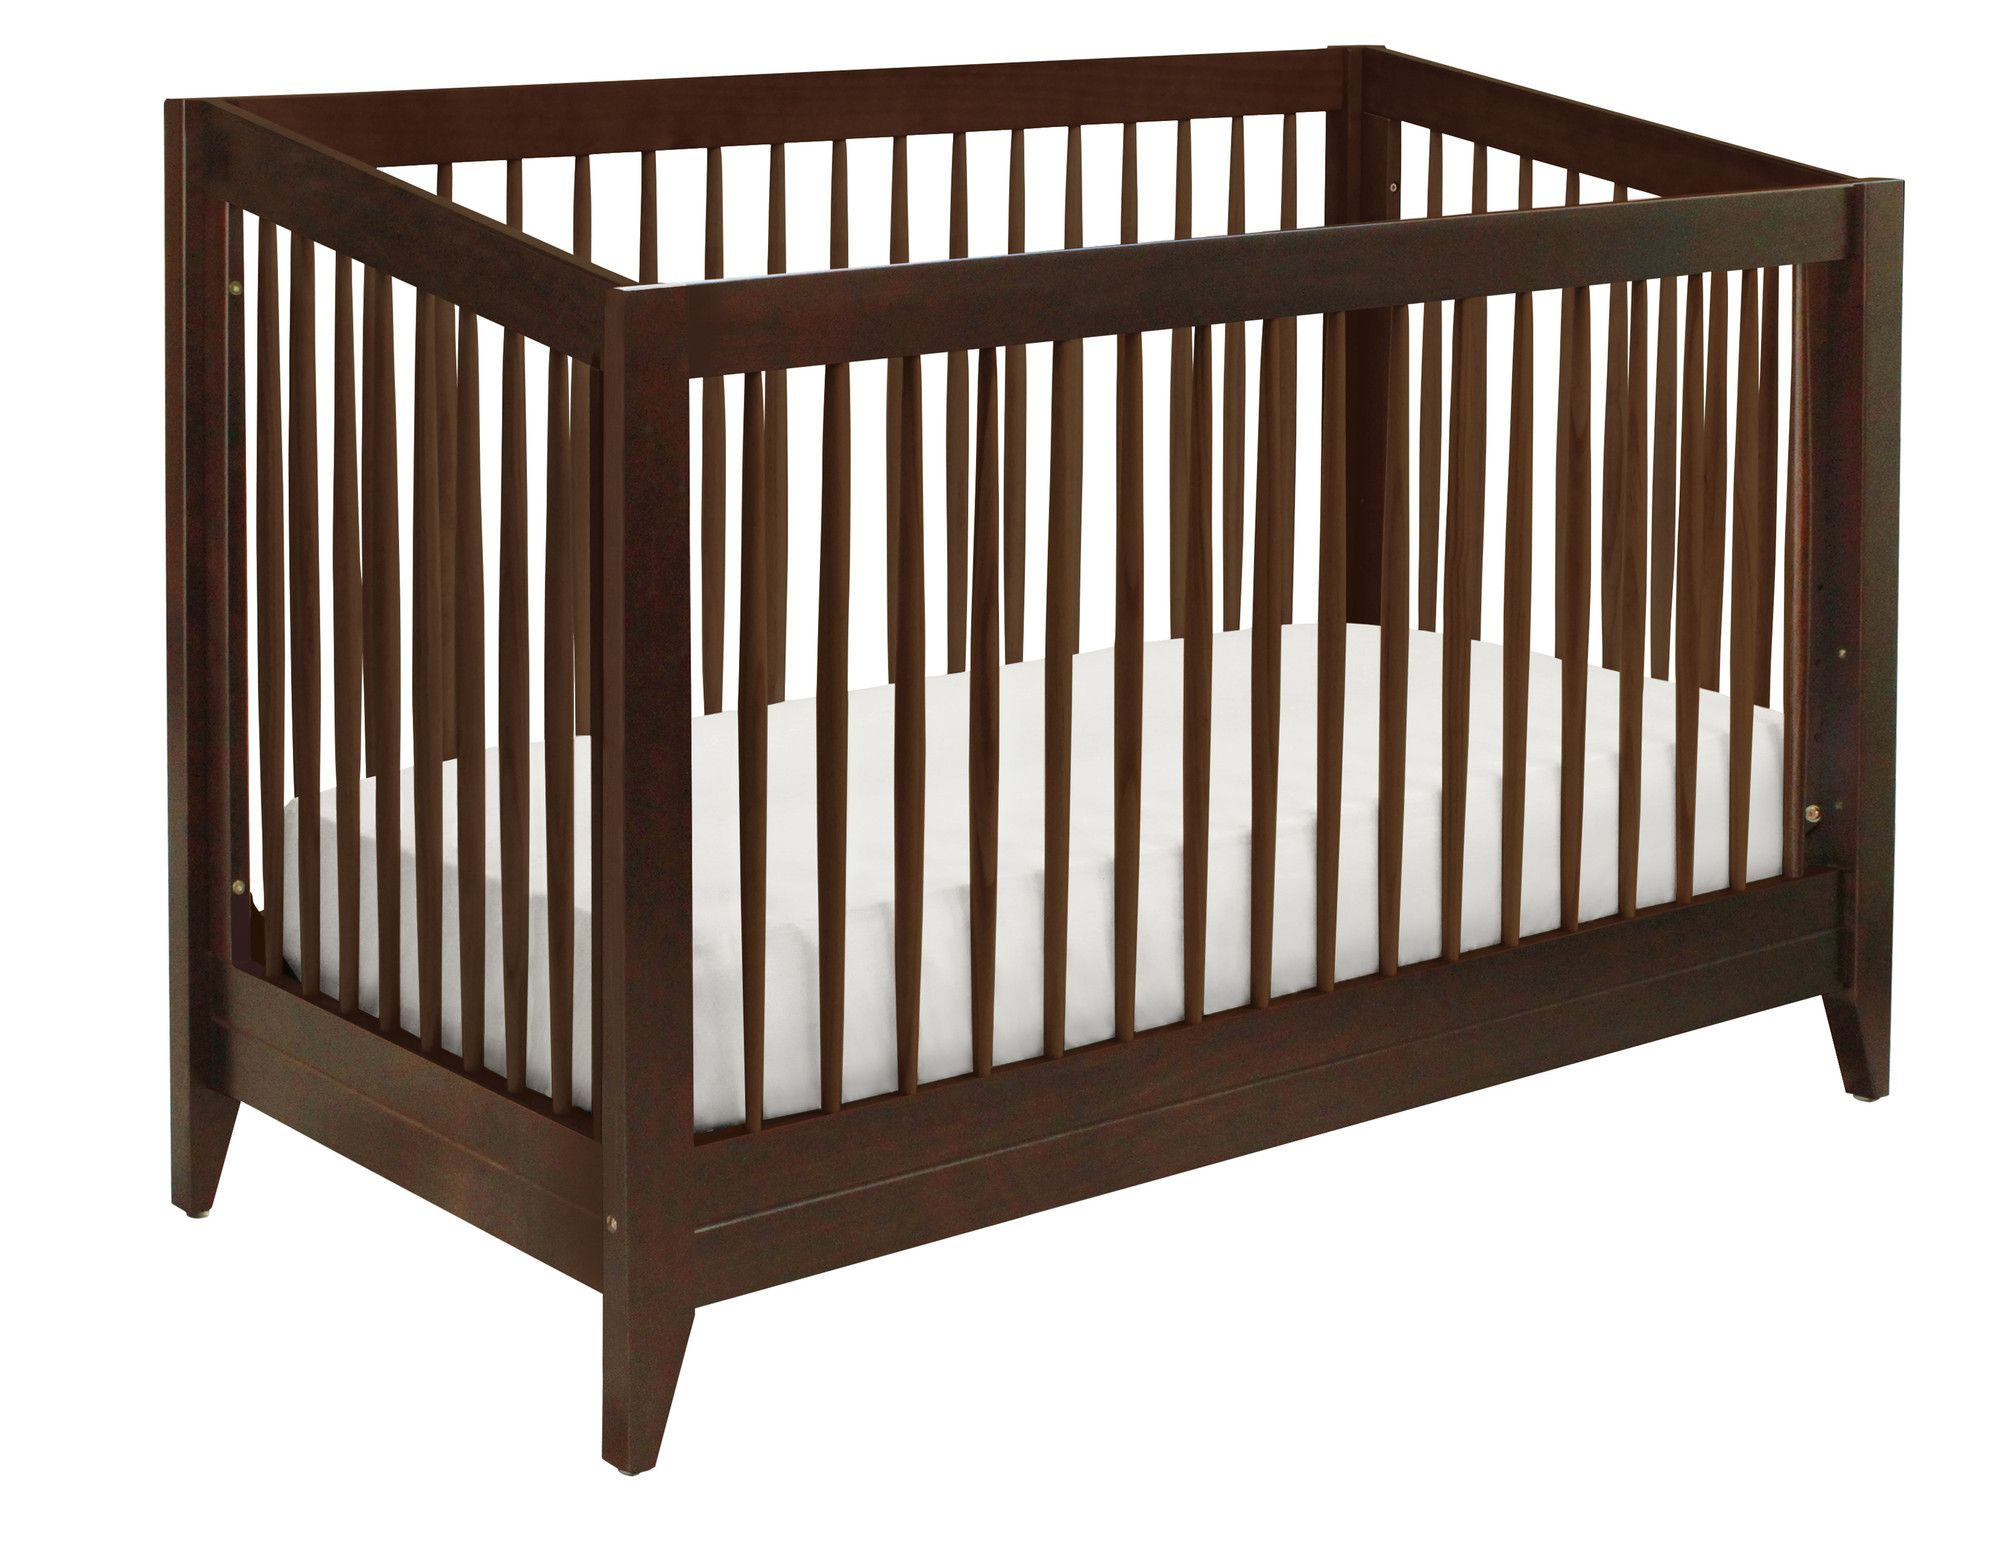 cribs baby larger convertible sale view cribscom girly l sets bedding set for hayneedle furniture crib with